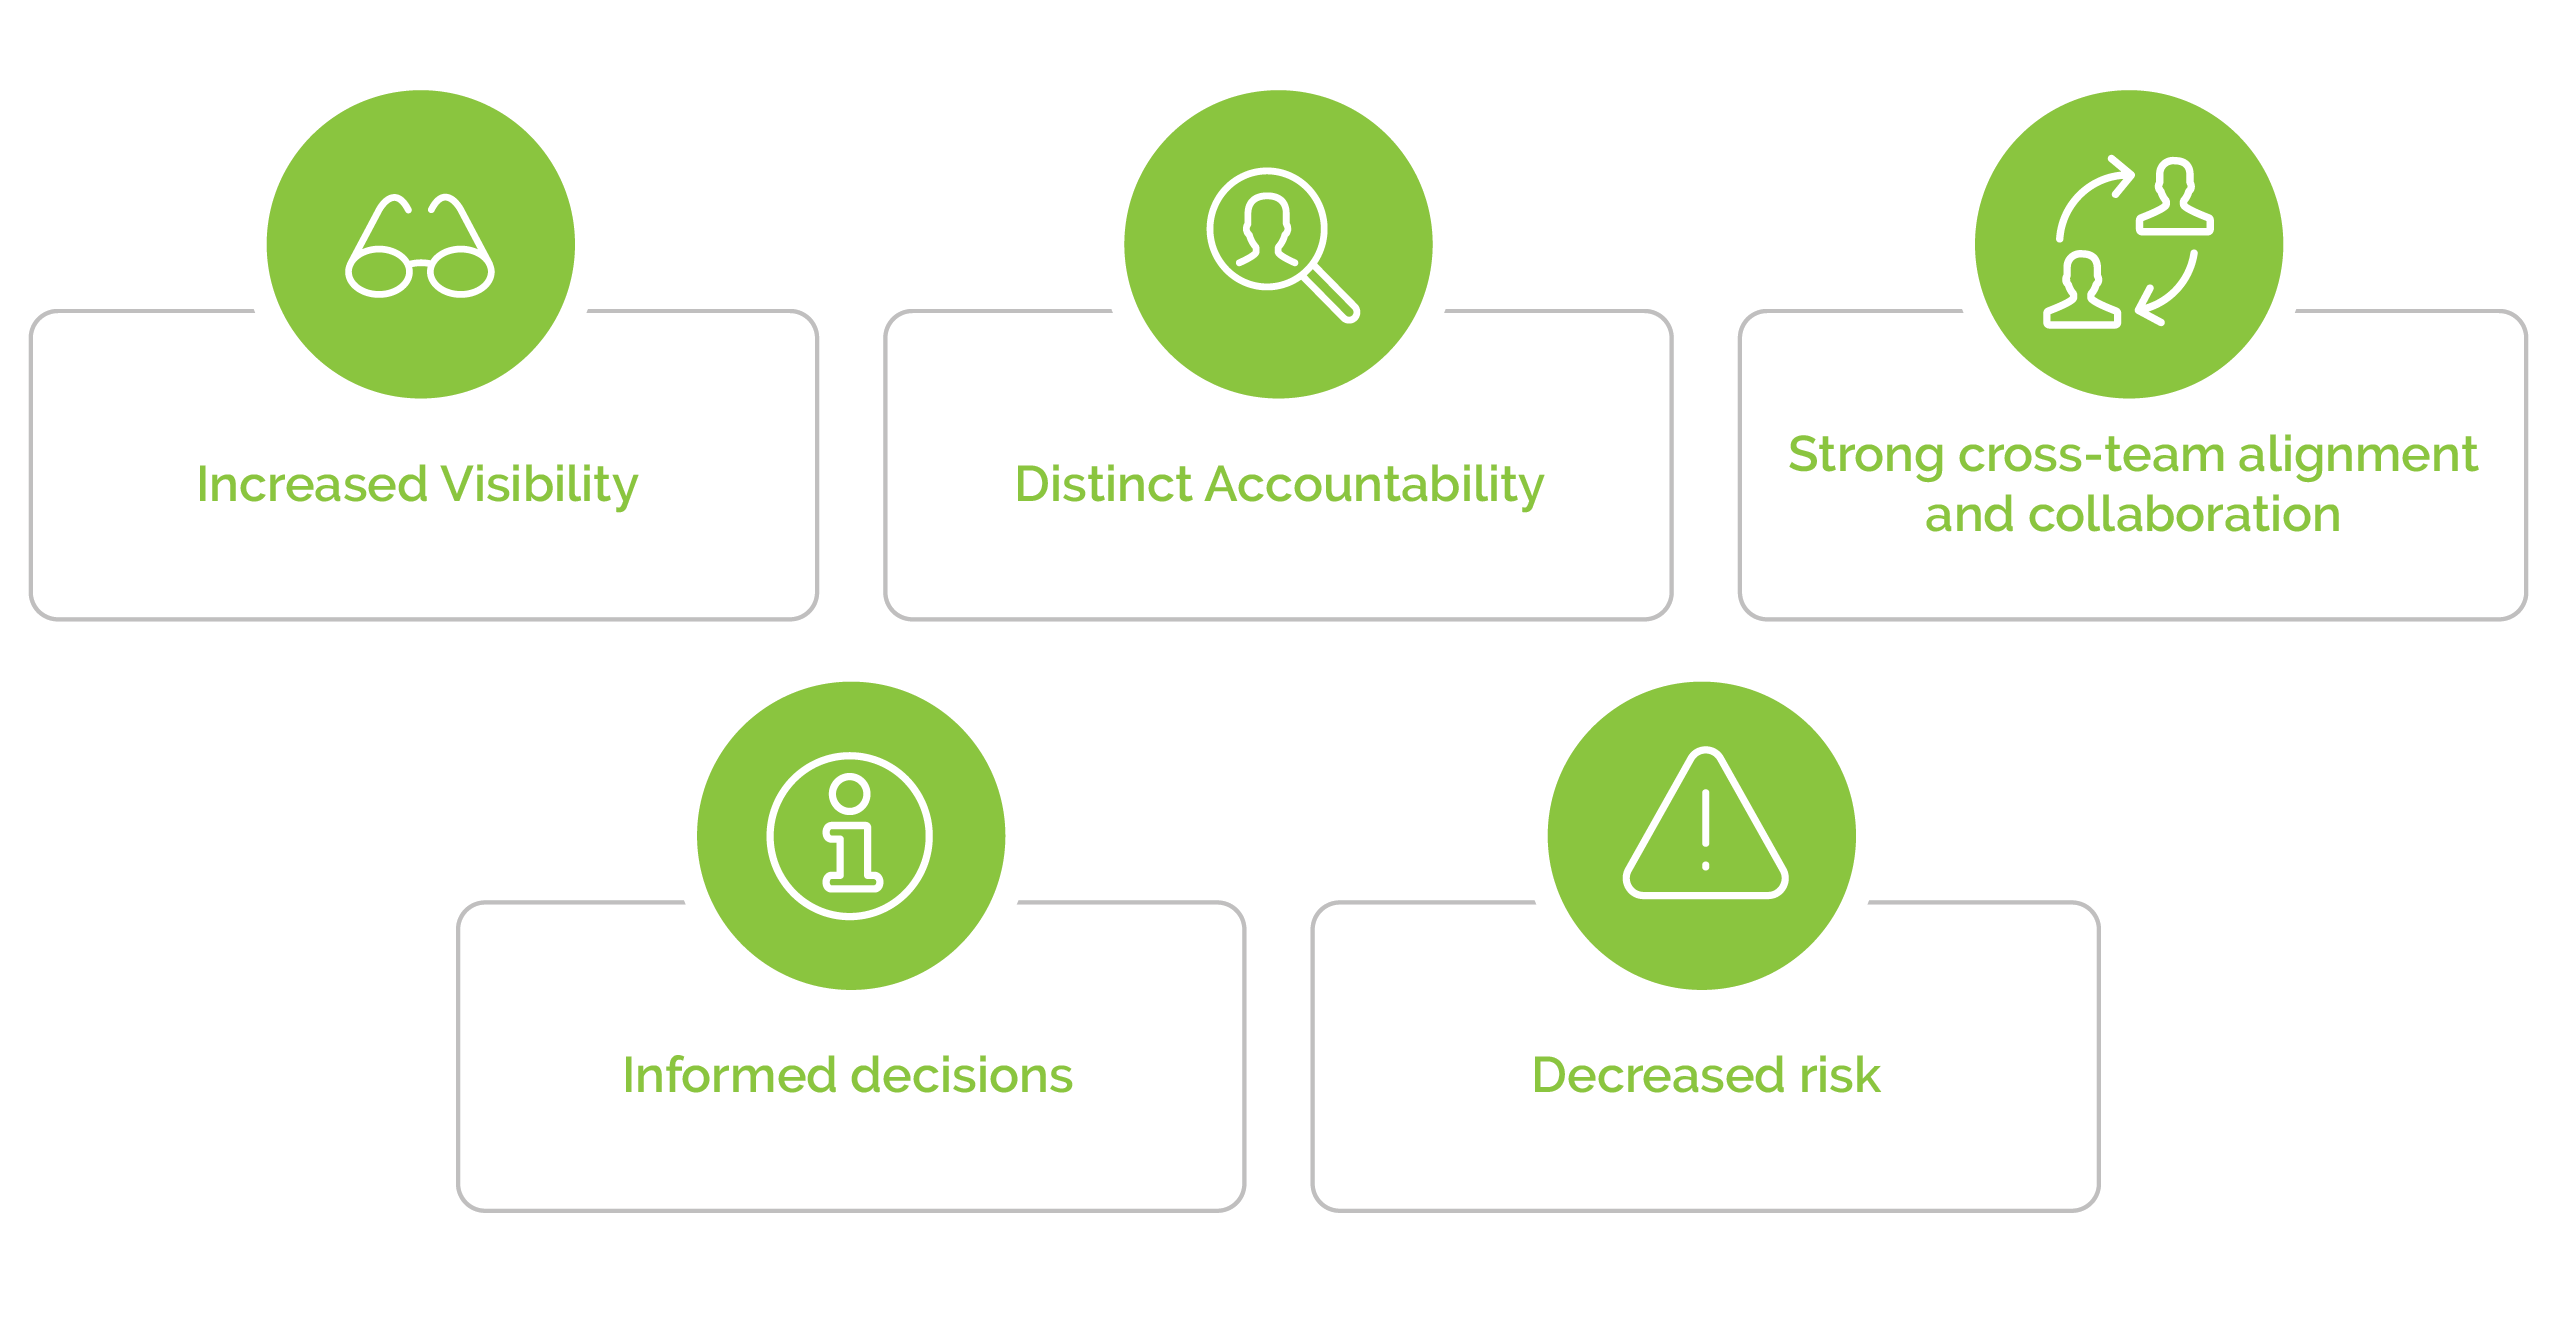 Graphic with Business Intelligence elements: increased visibility, distinct accountability, strong cross-team alignment and collaboration, informed decisions, and decreased risk